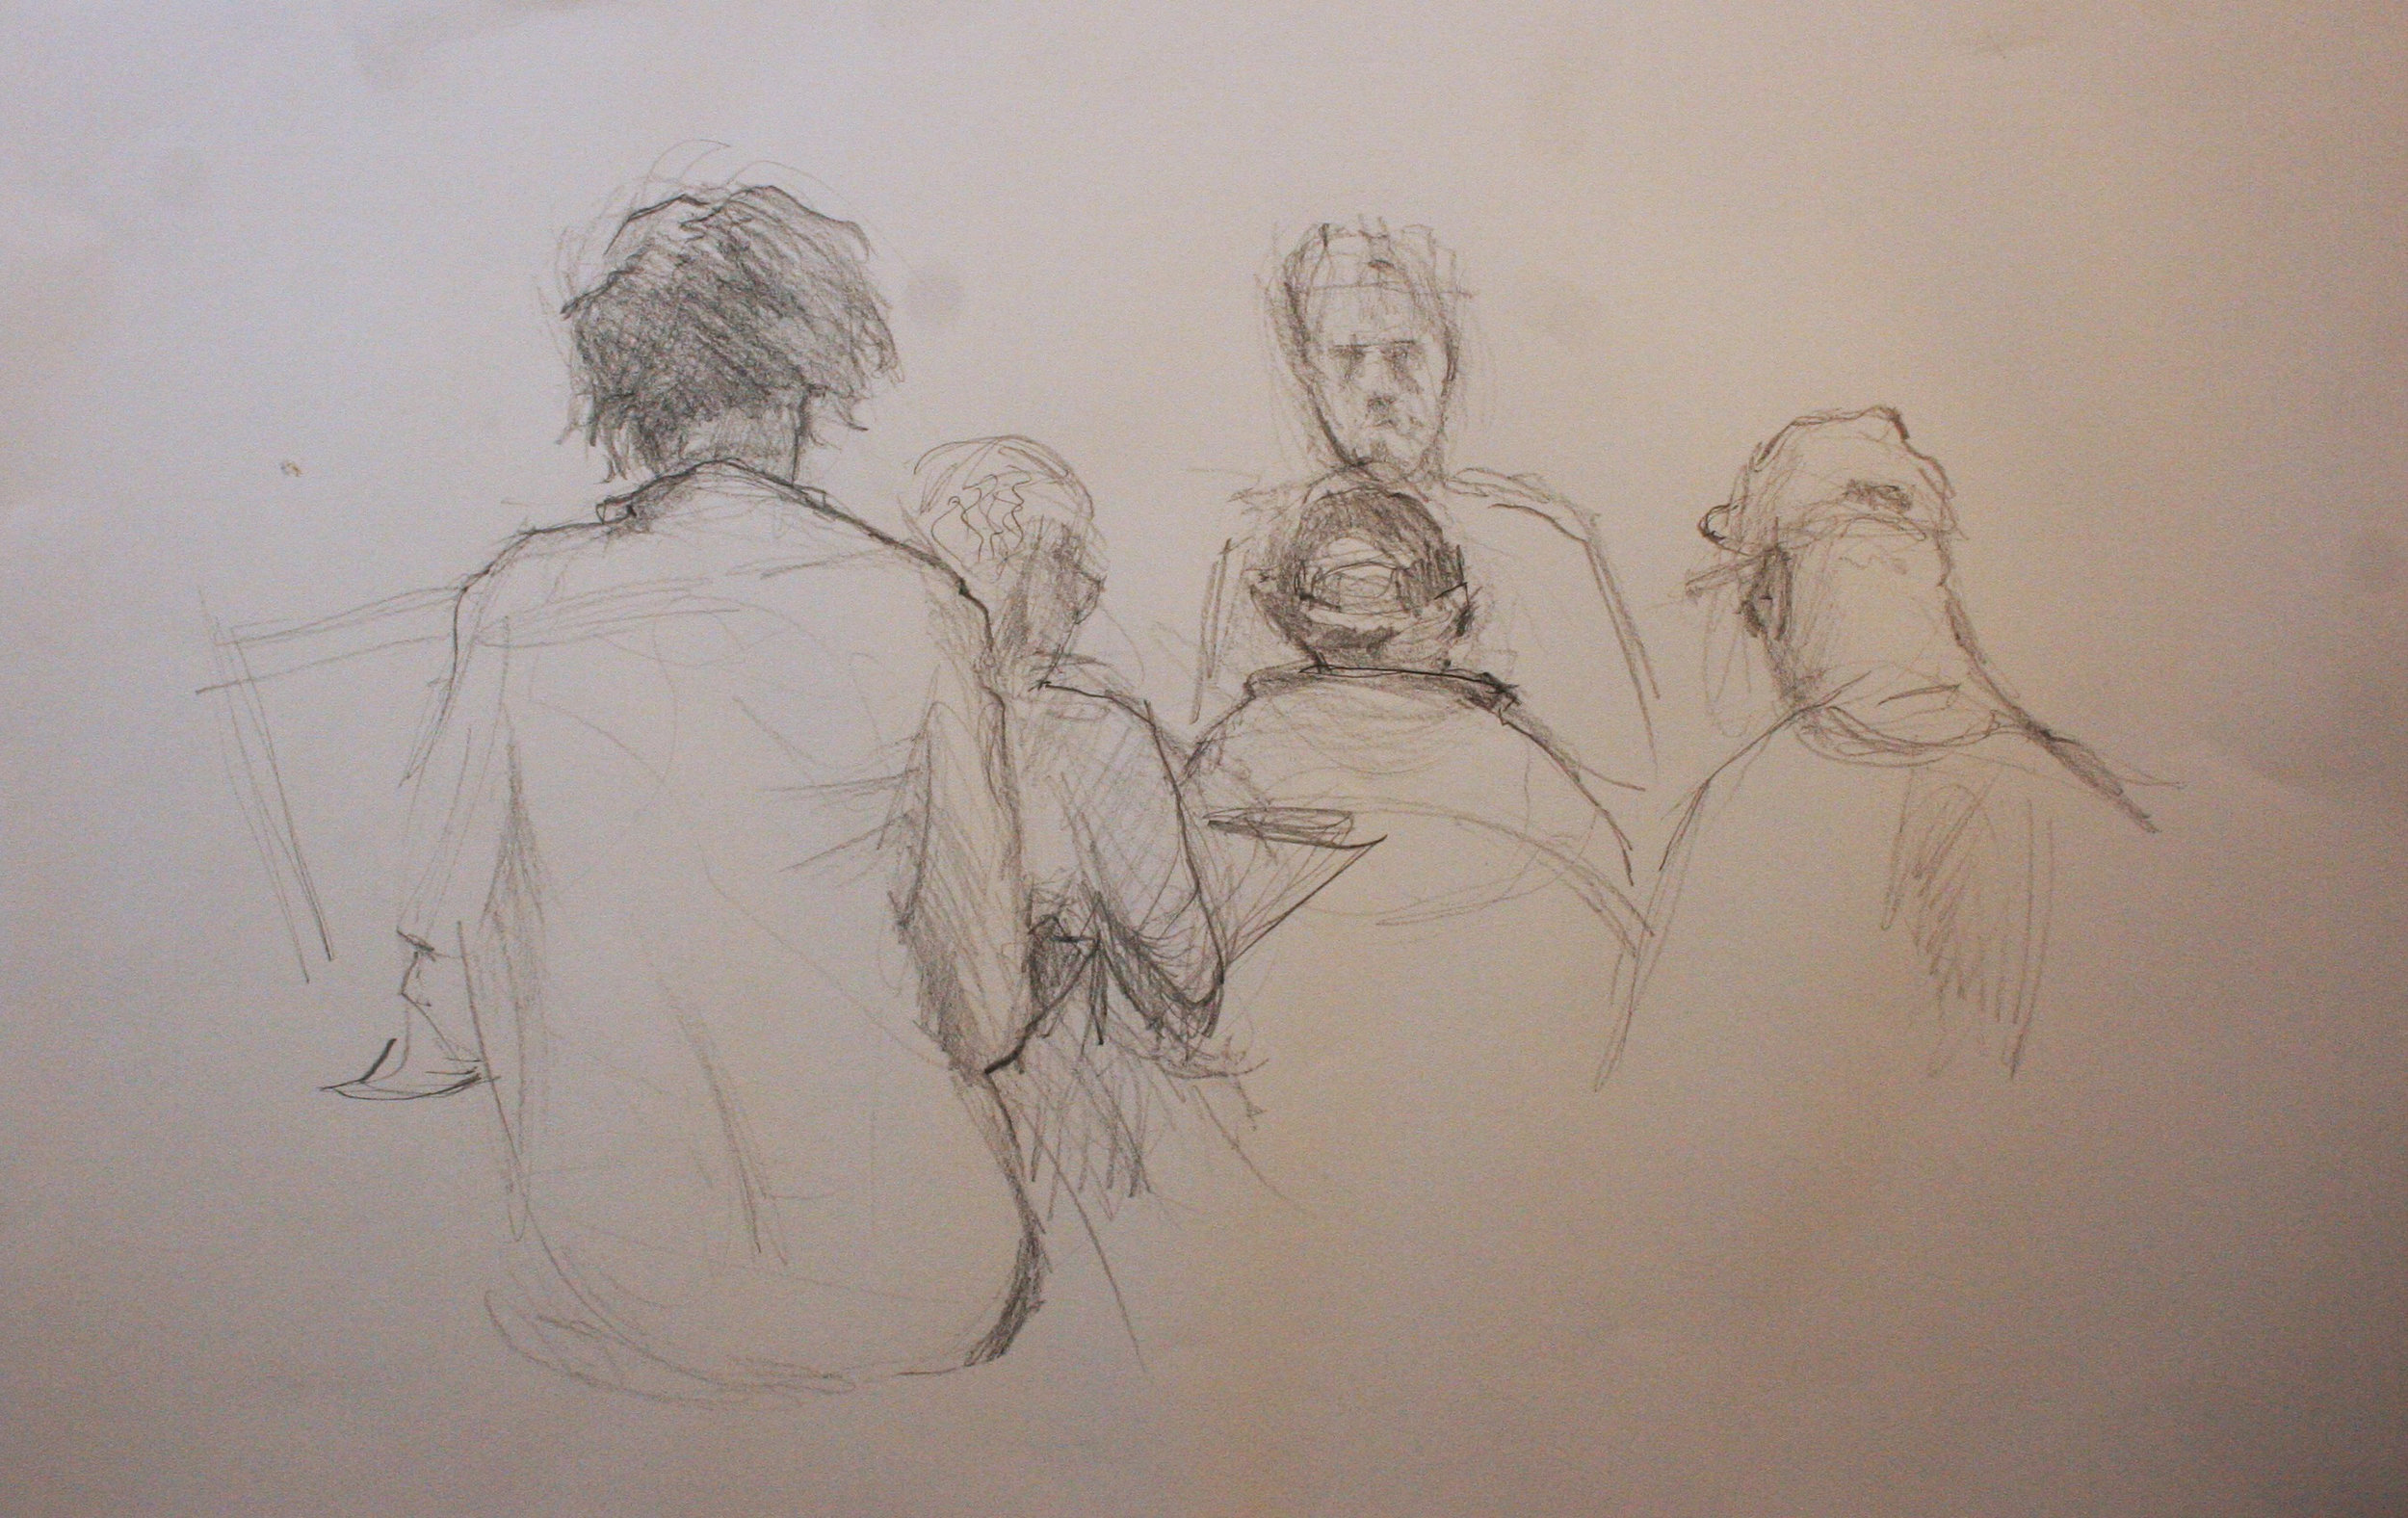 William Leddy did this drawing of the artists drawing John Troxell.